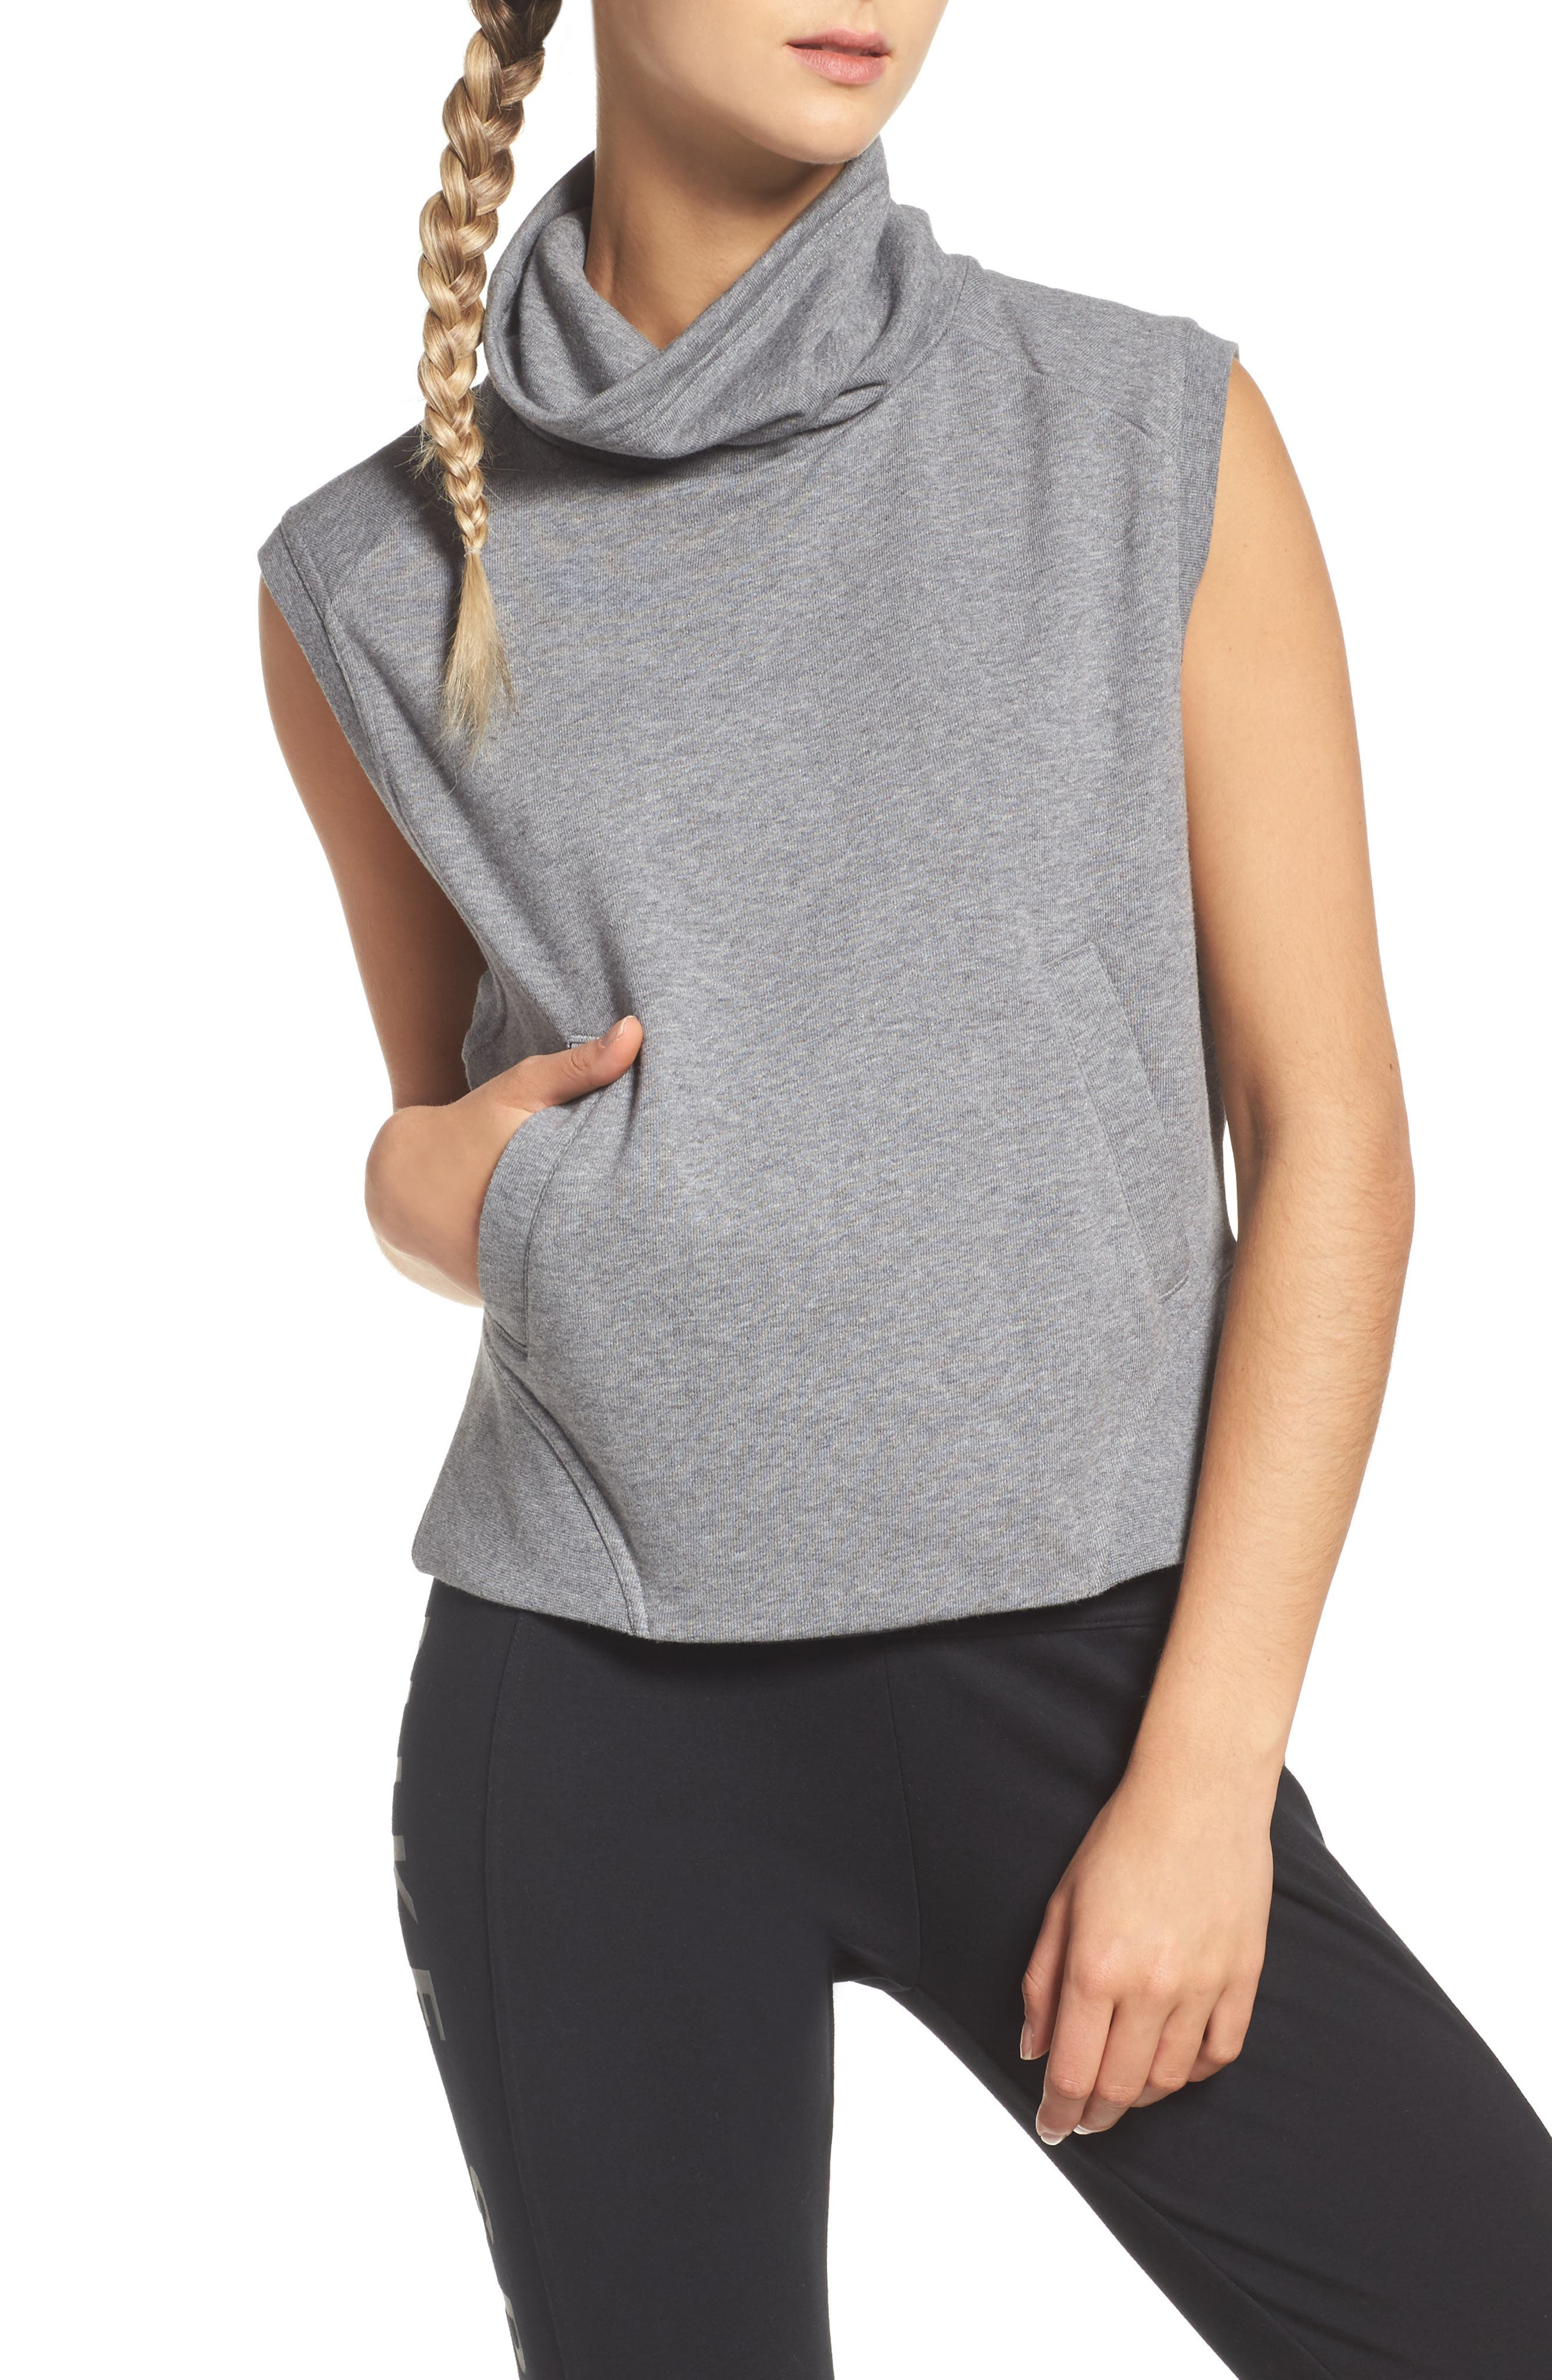 Funnel Neck Vest,                             Main thumbnail 1, color,                             Carbon Heather/ Black